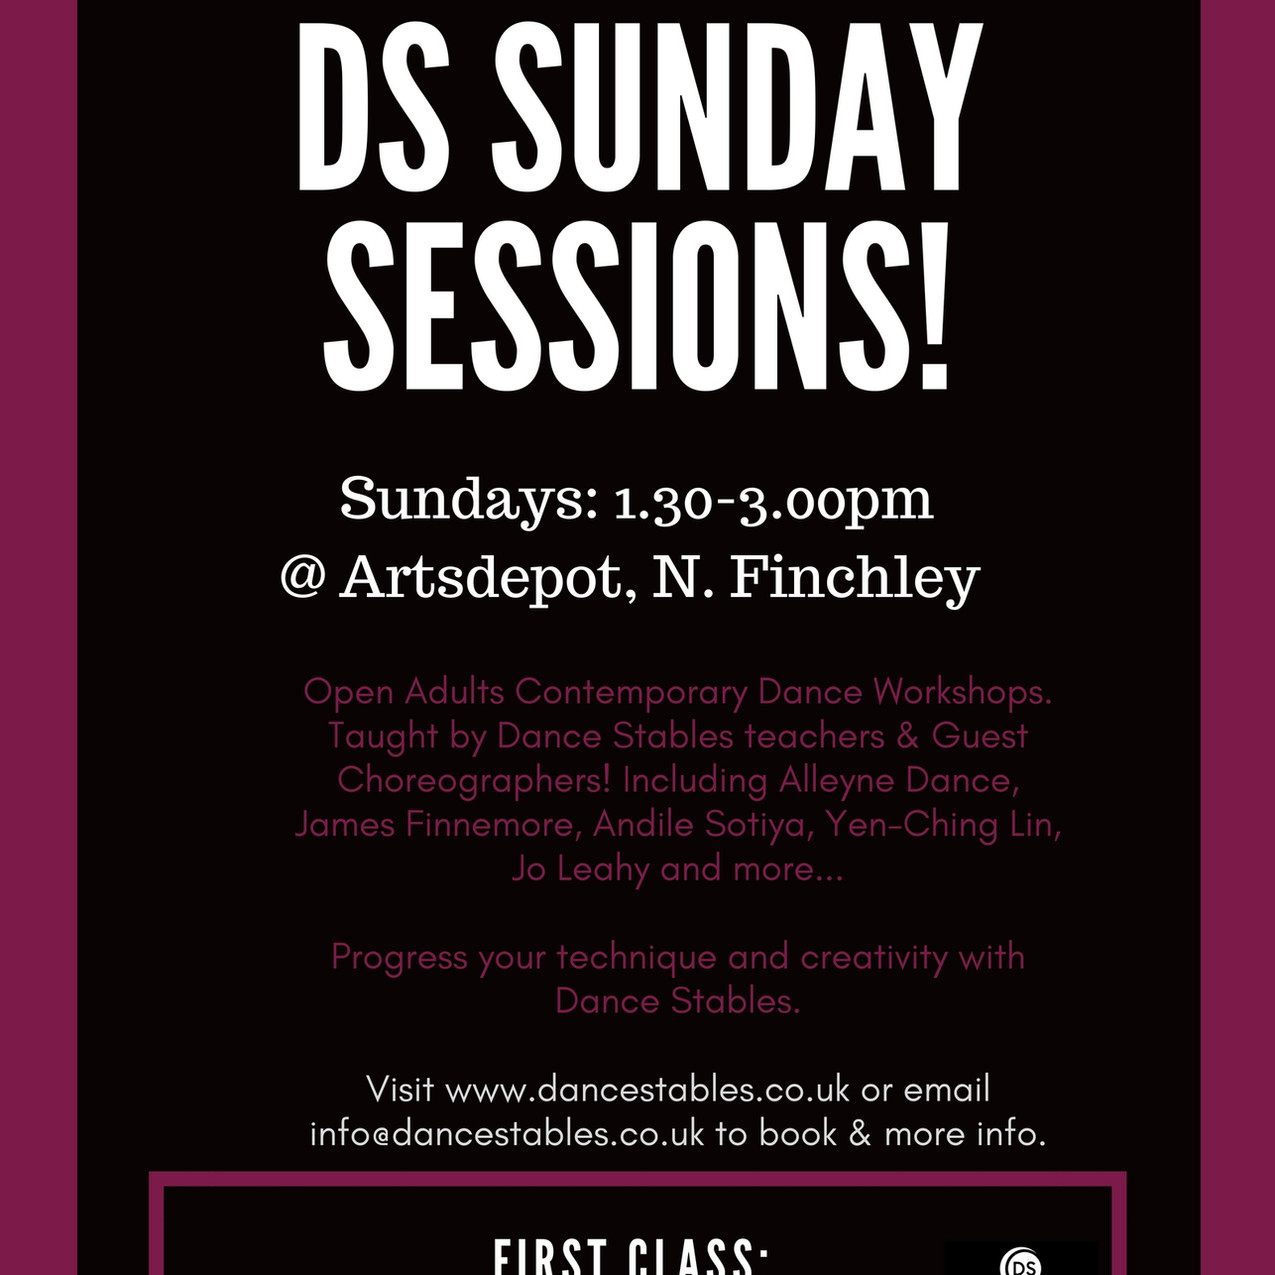 DS SUNDAY SESSIONS-5